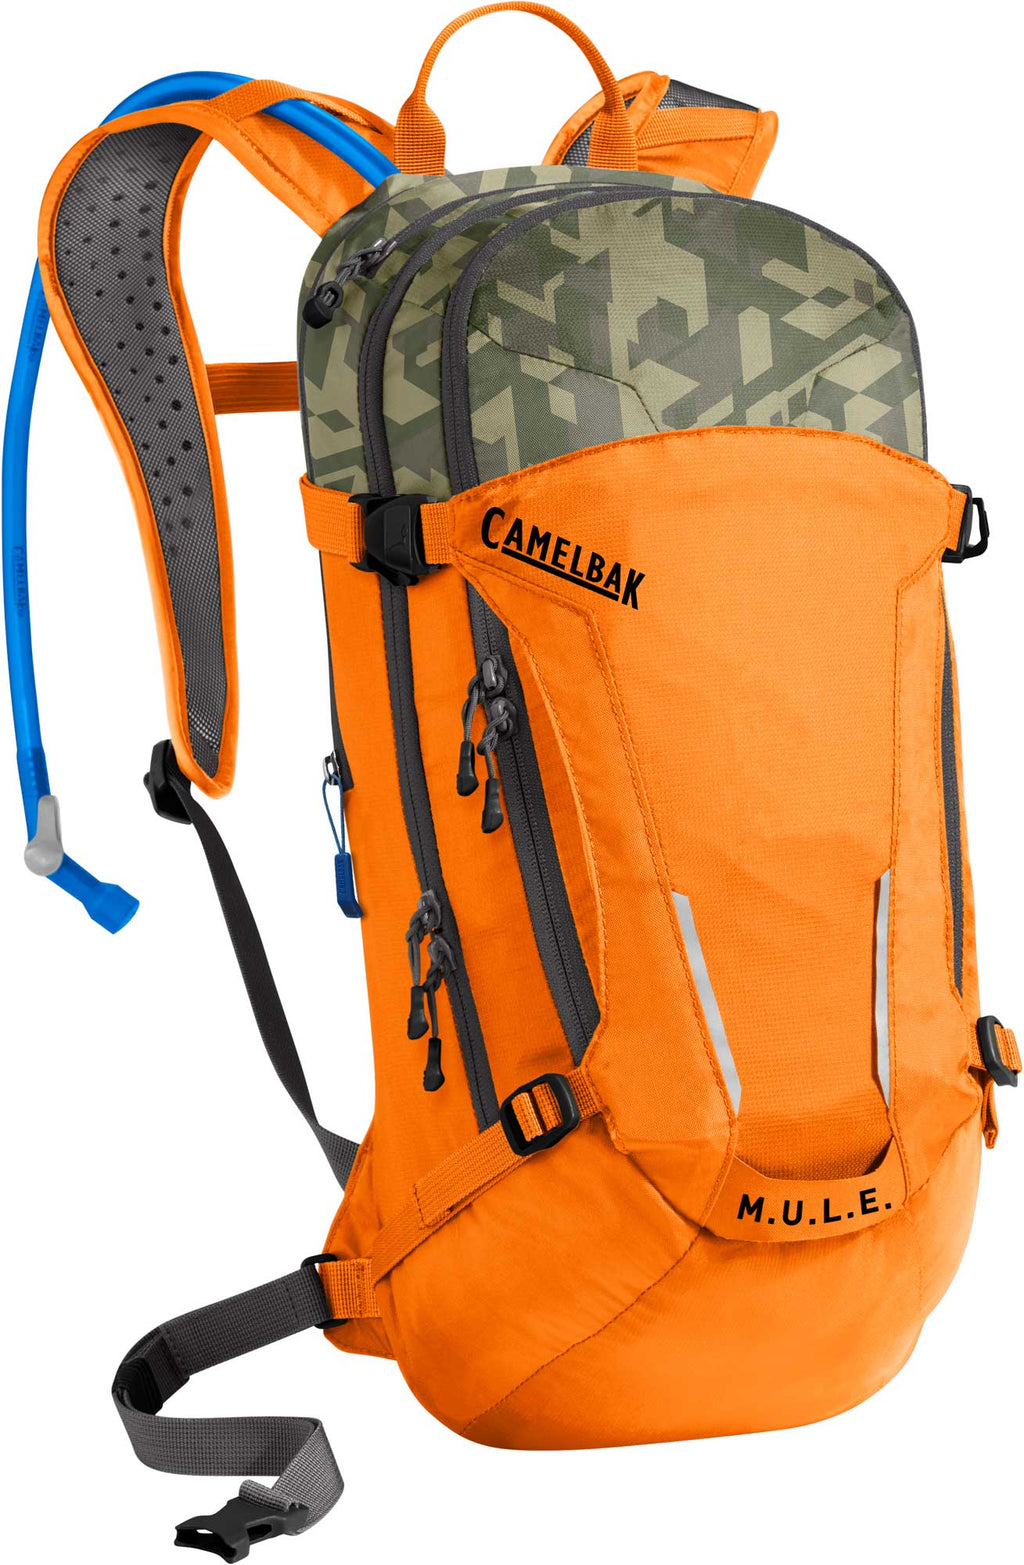 CamelBak M.U.L.E Mountain Biking Hydration Pack Russel Orange/Camleflage